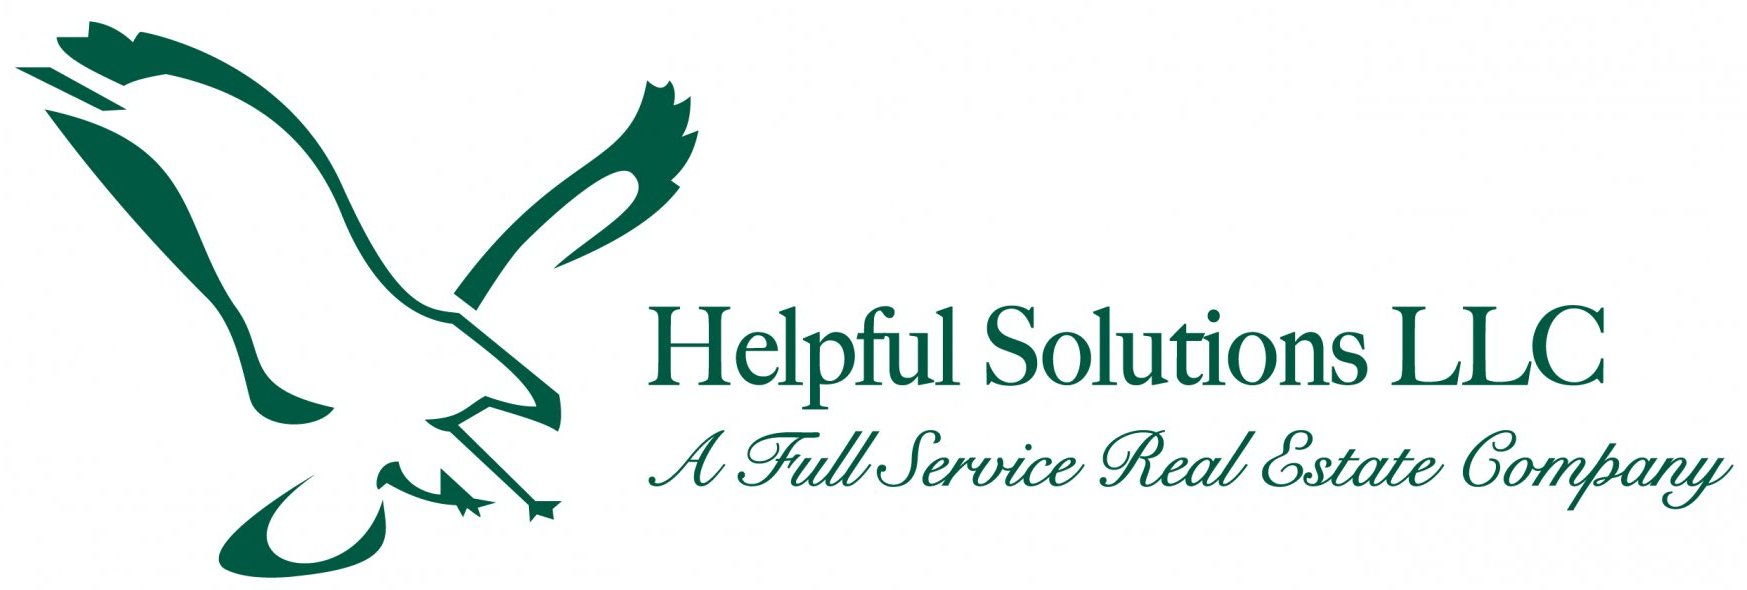 Helpful Solutions LLC logo